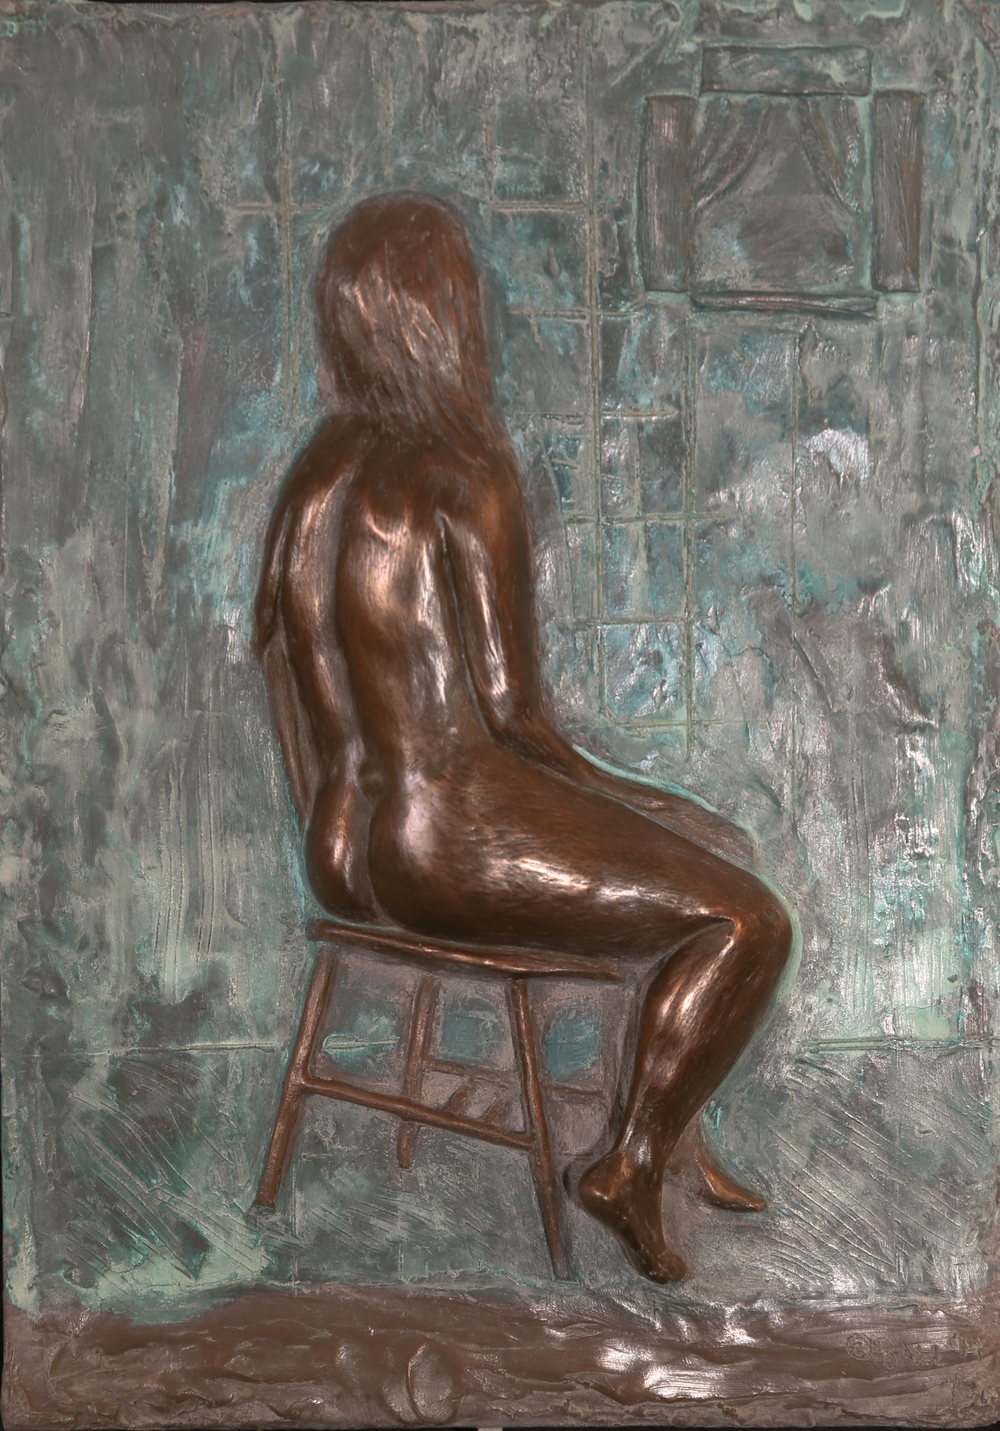 Femme sur la Chaise (2015) FMG Bronze, Edition: 30, 14x10x.25in. $1,500